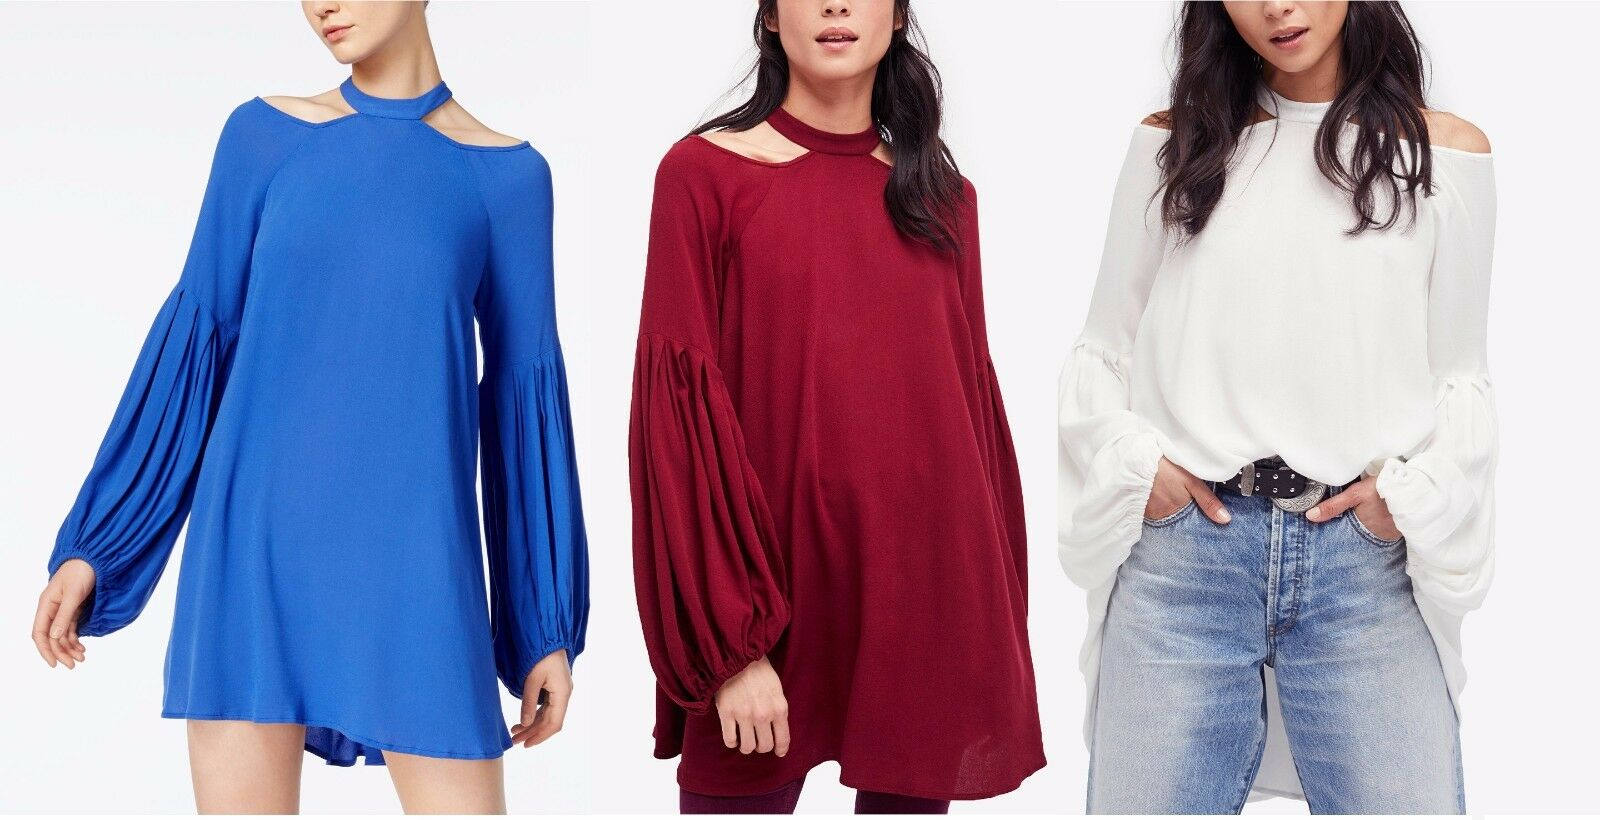 New Free People Woherren Fashion Cold Shoulder Drift Away tunic dress Top S M L